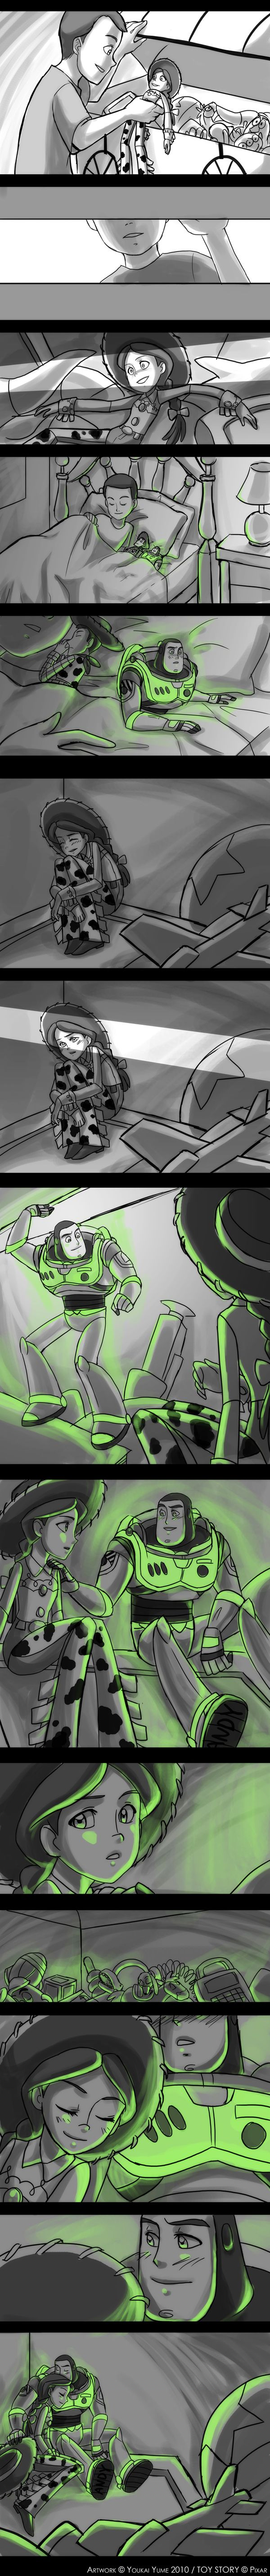 Toy Story: Glow in the Dark by *YoukaiYume on deviantART